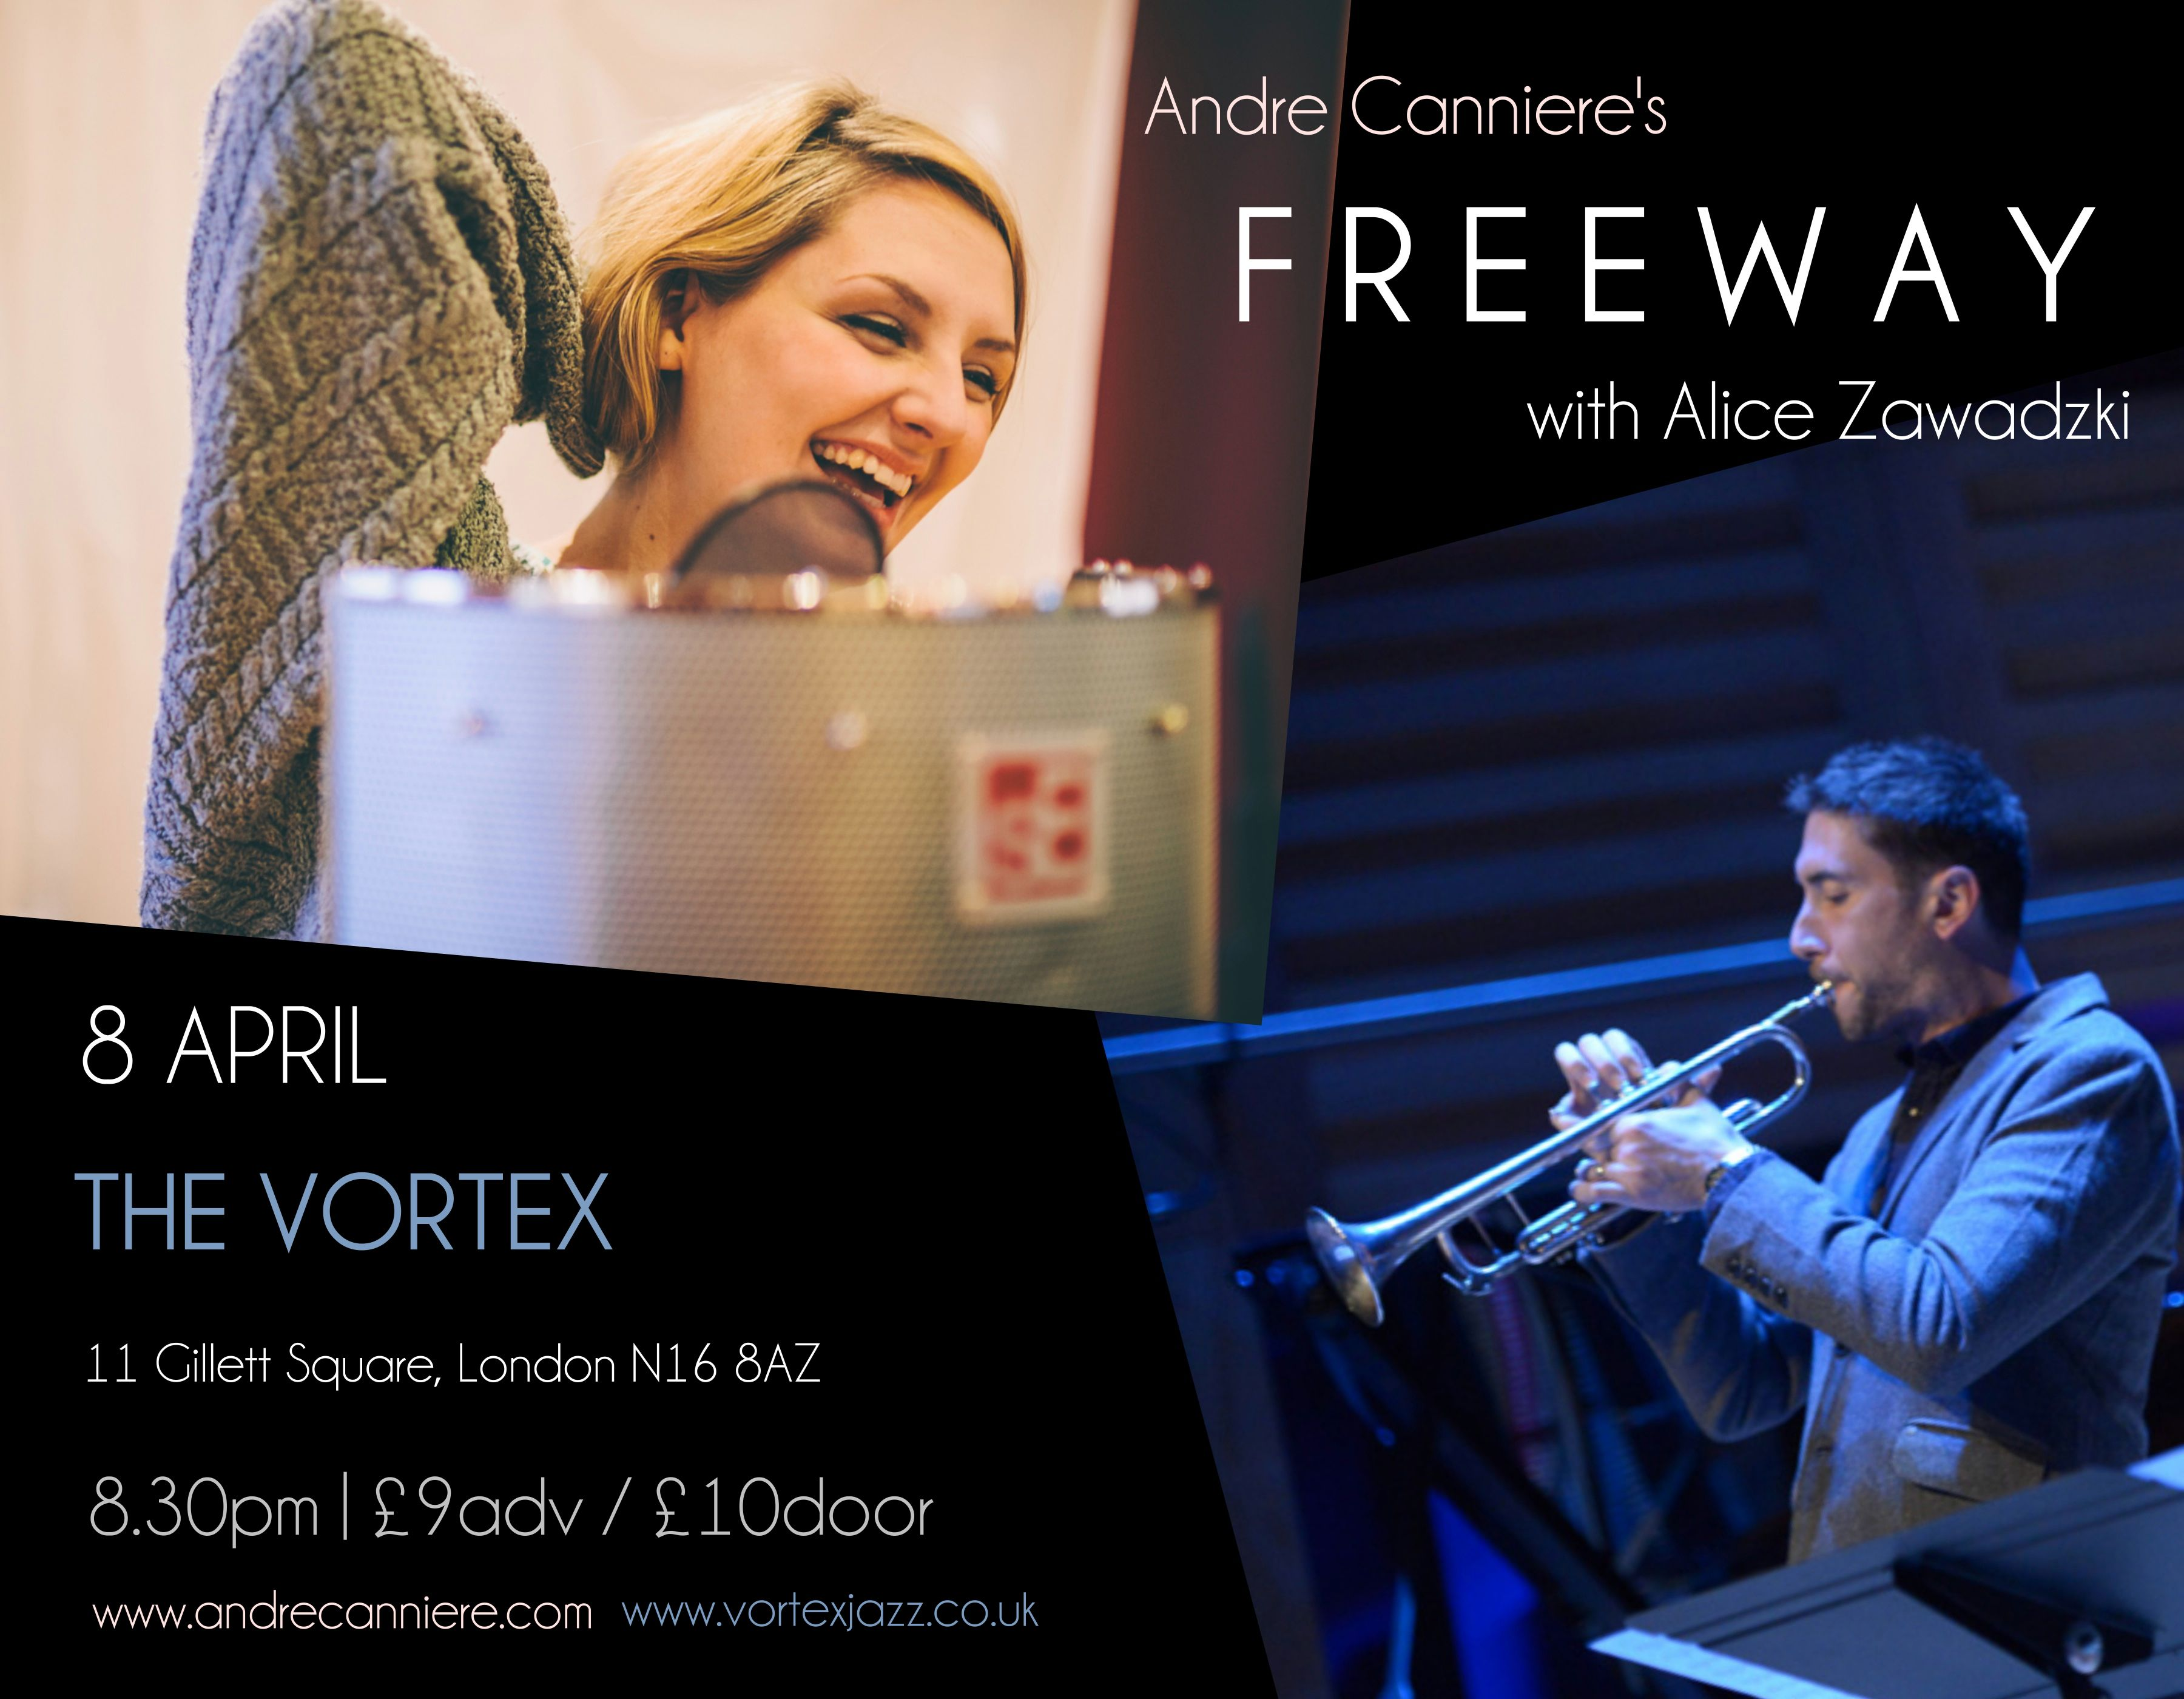 Freeway at The Vortex April 8th (with Alice Zawadzki)